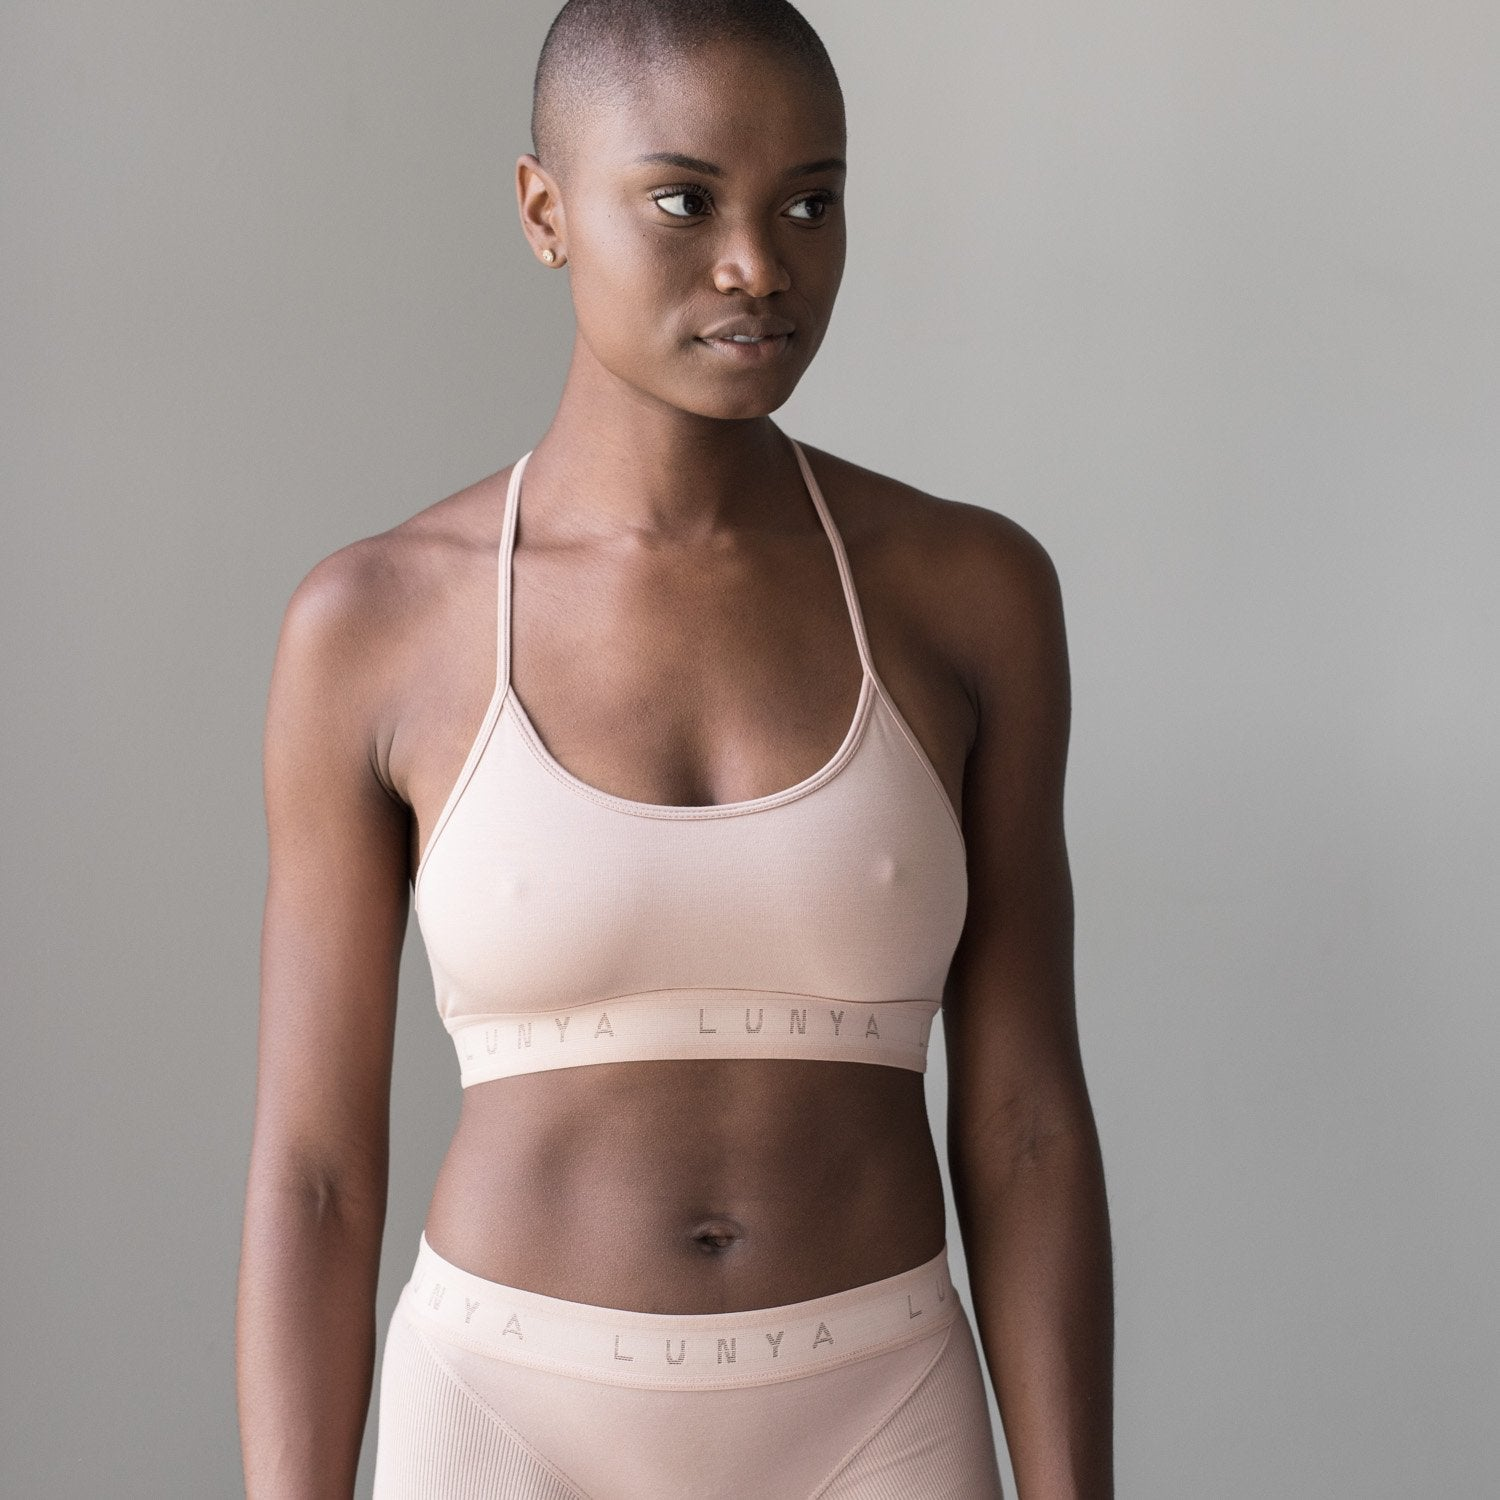 Lunya Sleepwear Supportive Modal Sleep Bralette - #Bare/Bare